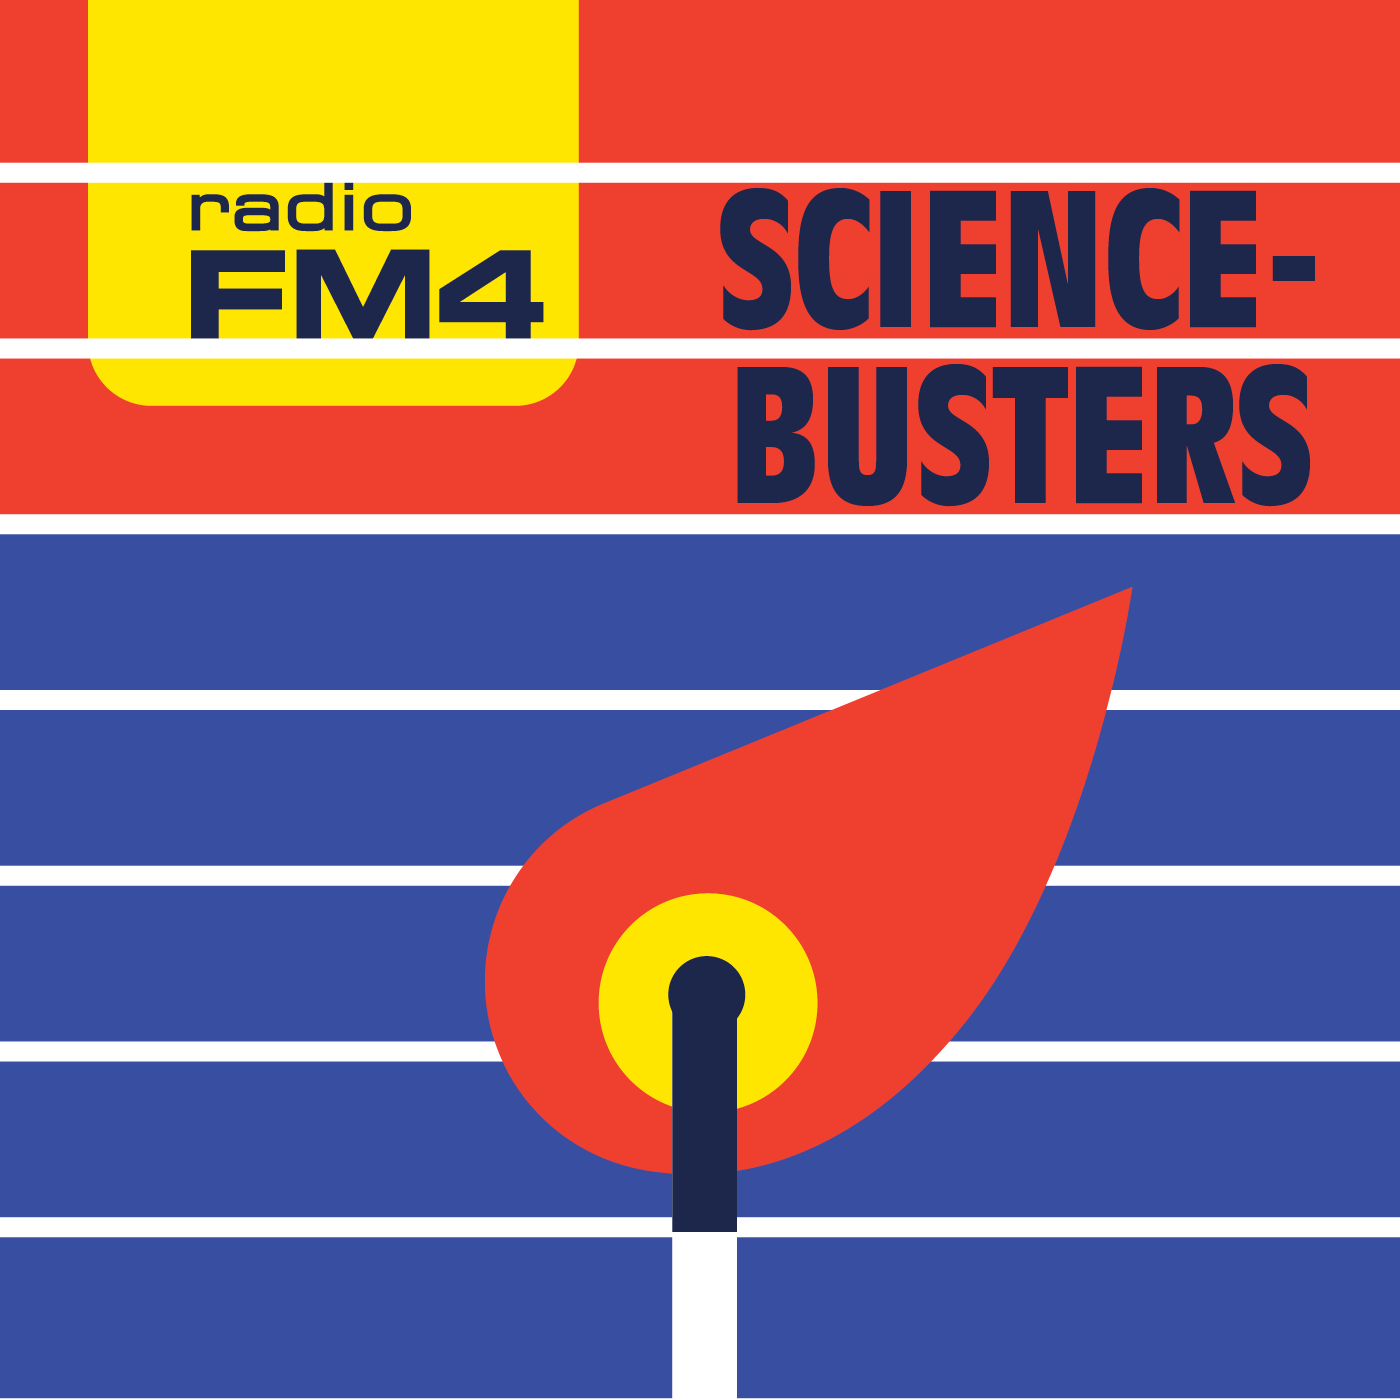 FM4 Science Busters